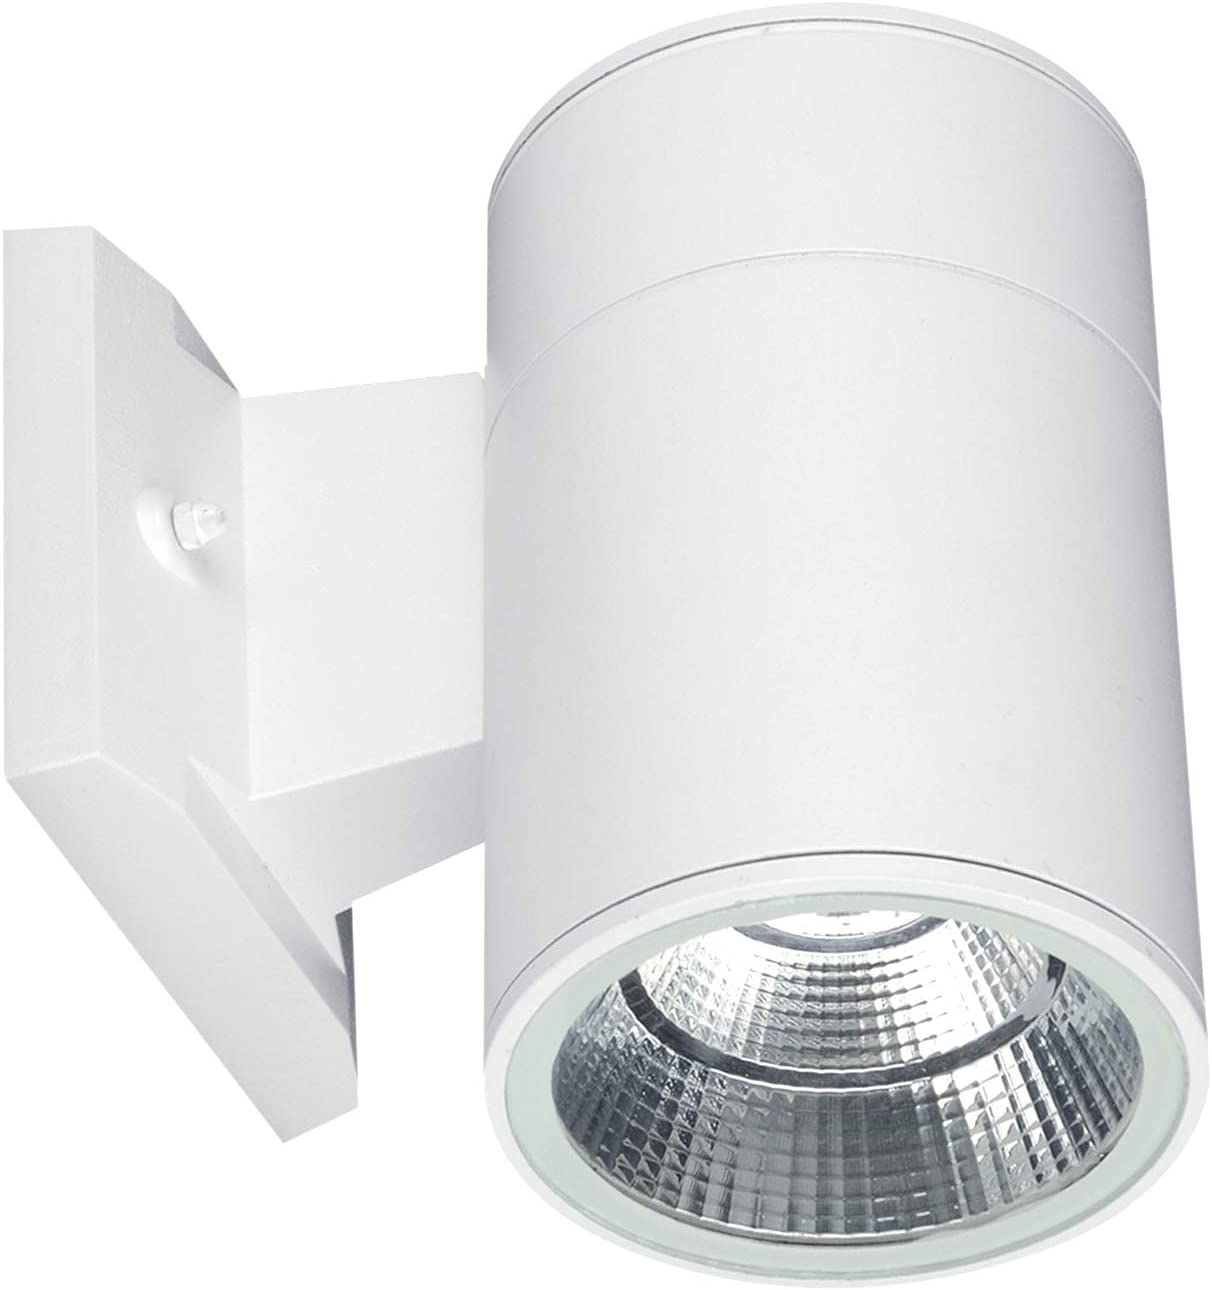 OSTWIN (8 Pack) 1-Direction LED Outdoor Cylinder Up or Down Light, 9W (60W Equivalent), 735 Lumen, 3000K Warm Light, Modern Light Fixture for Door Way, Corridor, Waterproof, White, ETL and Energy Star